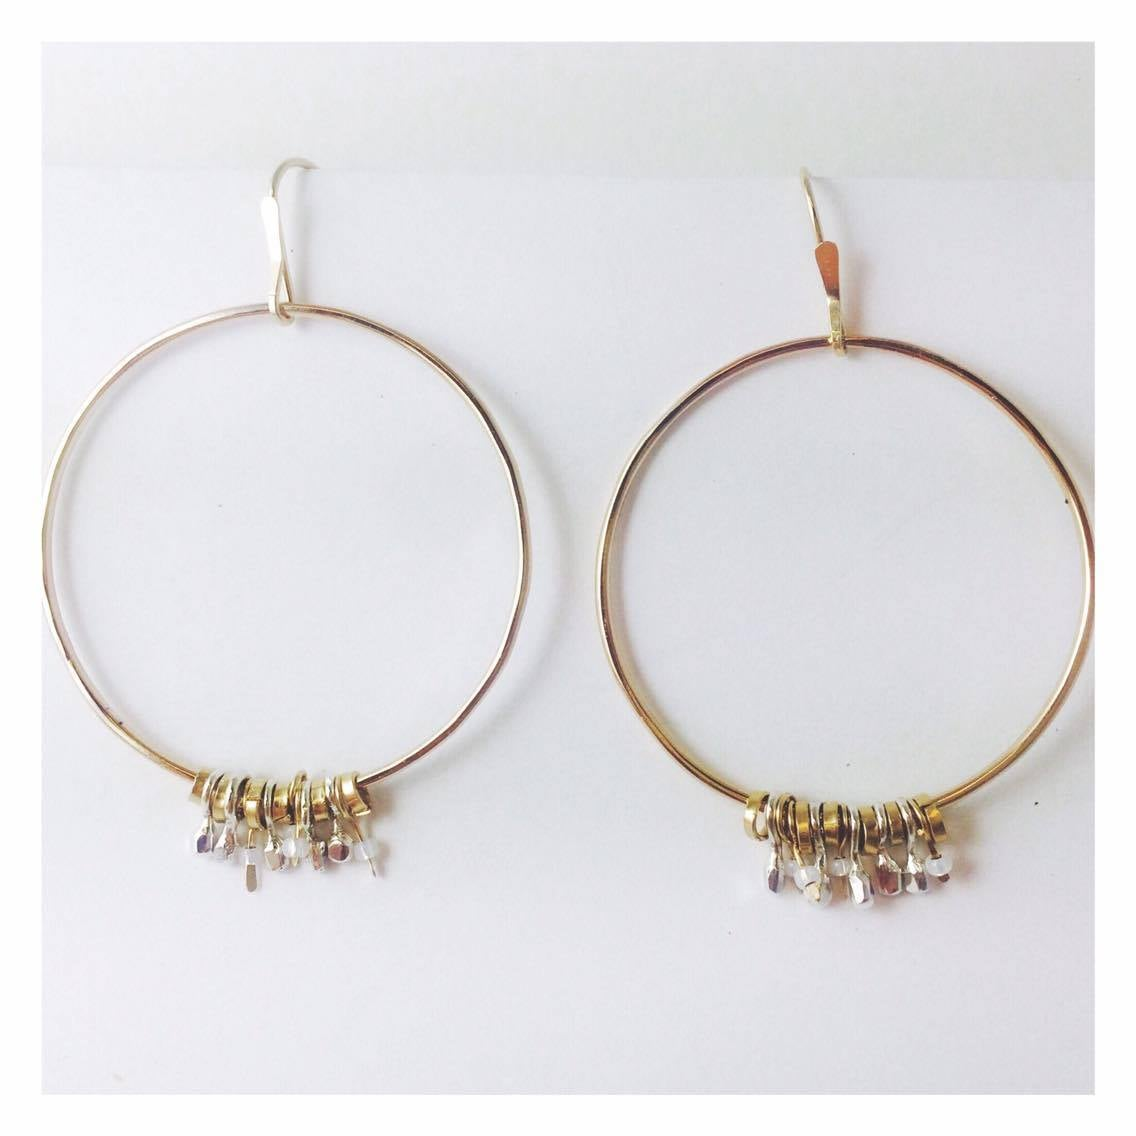 Image of Gold and Silver Charm Hoops